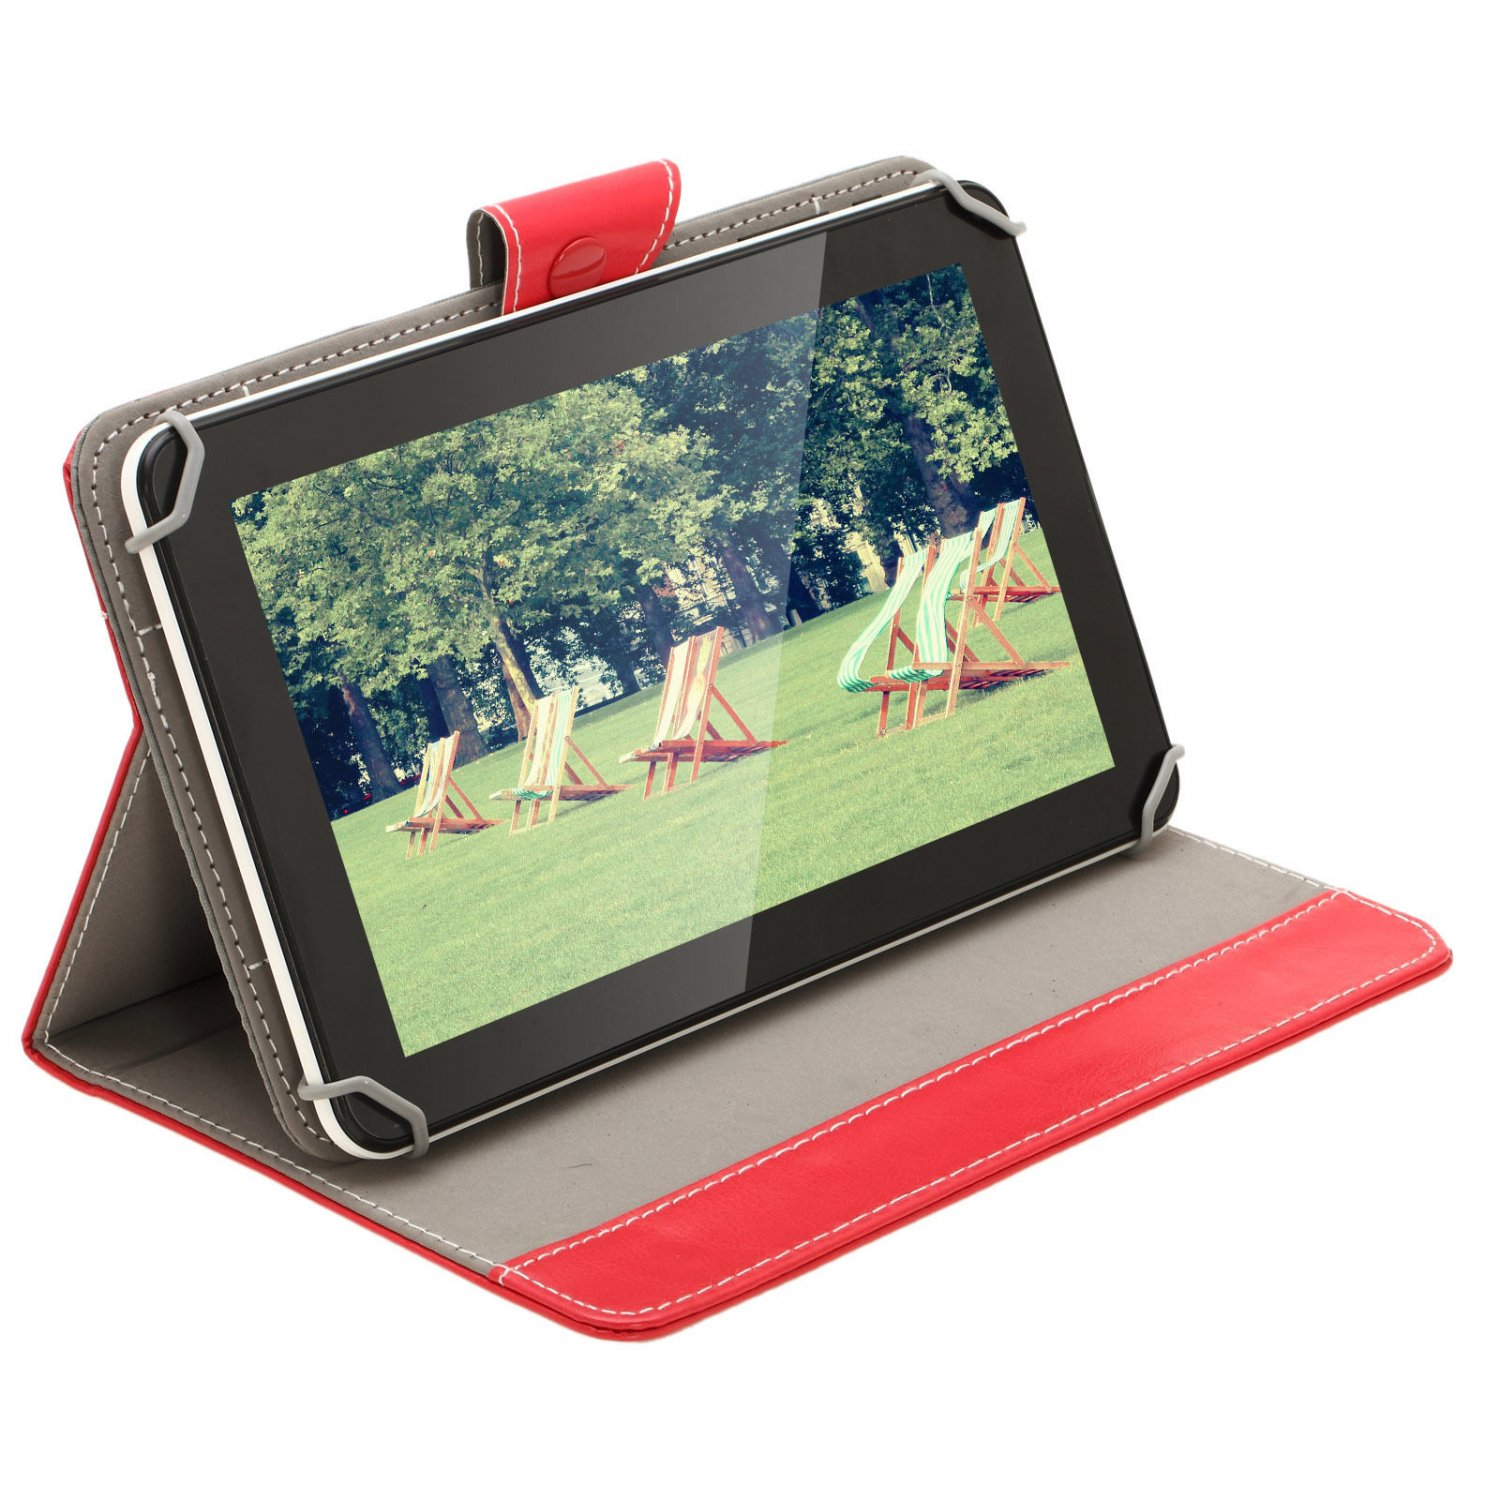 """IRULU 9"""" Tablet PC 16GB Android 4.2 Dual Core/Camera 800x480 WiFi w/RED Case"""